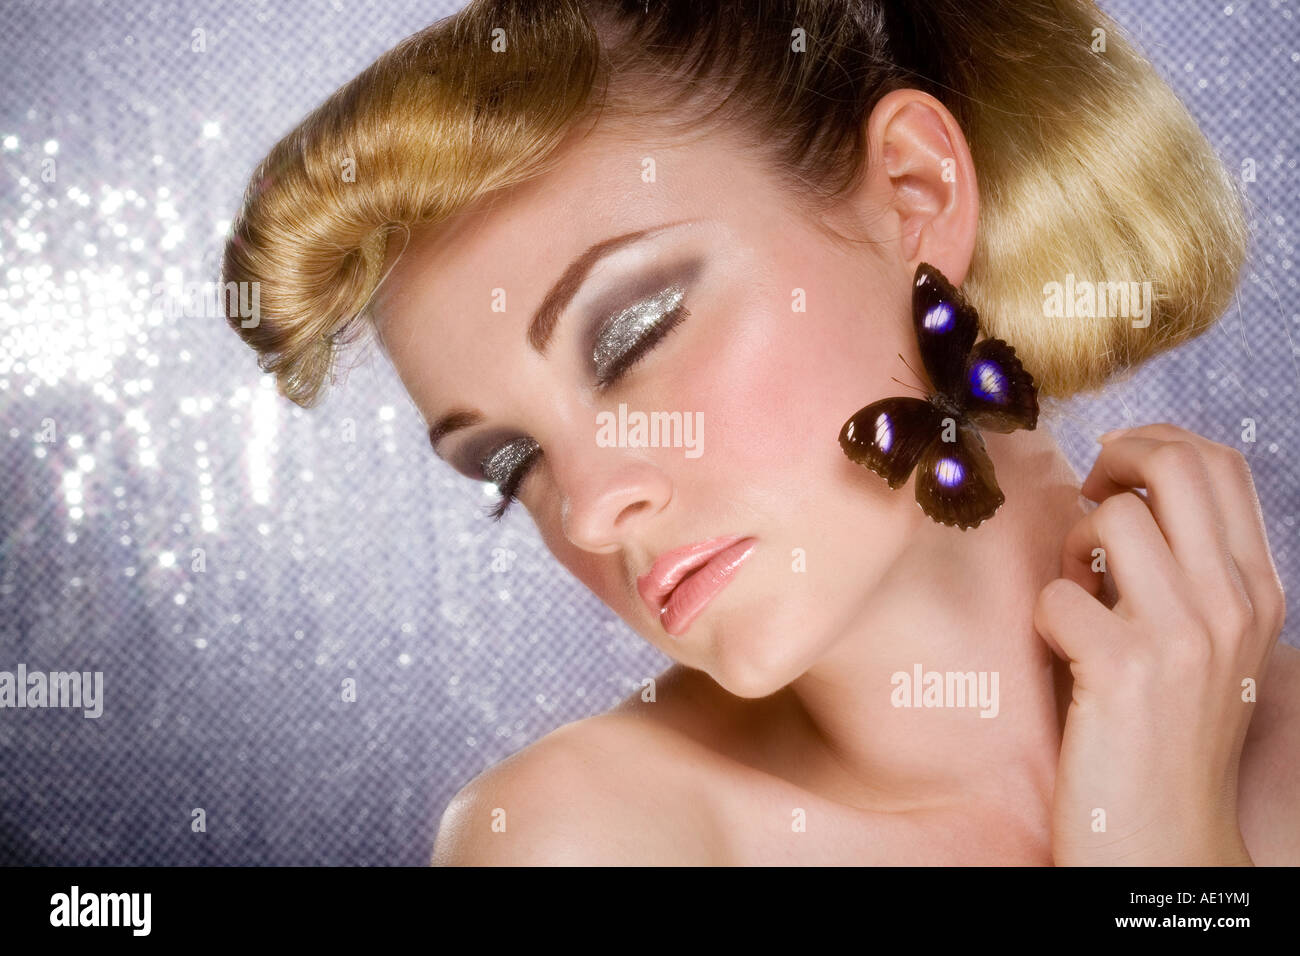 A portrait beautiful, glamorous young girl with a butterfly on her face. - Stock Image